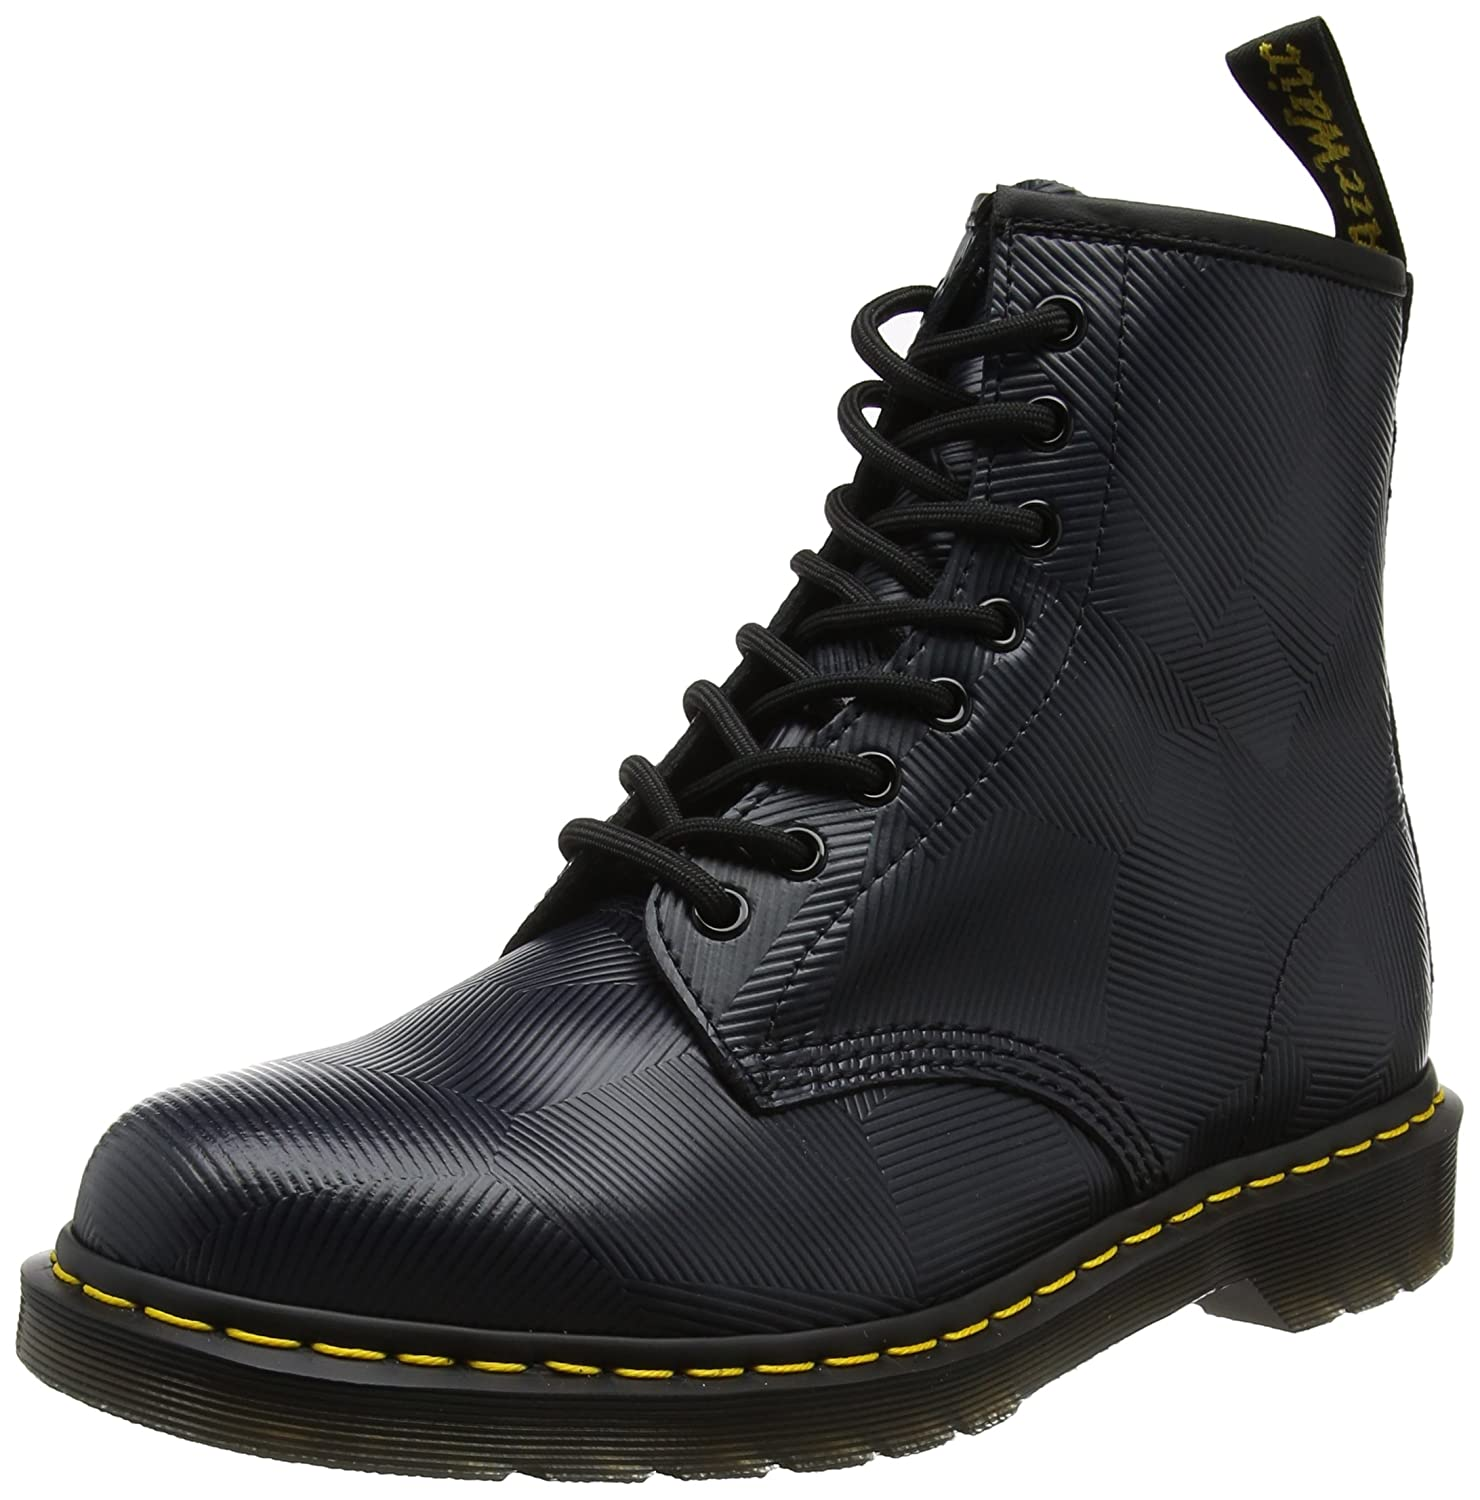 Dr. Martens Men's 1460 Oxford B01NBP9232 12 M UK (Men's 13 US)|Charcoal Geostripe